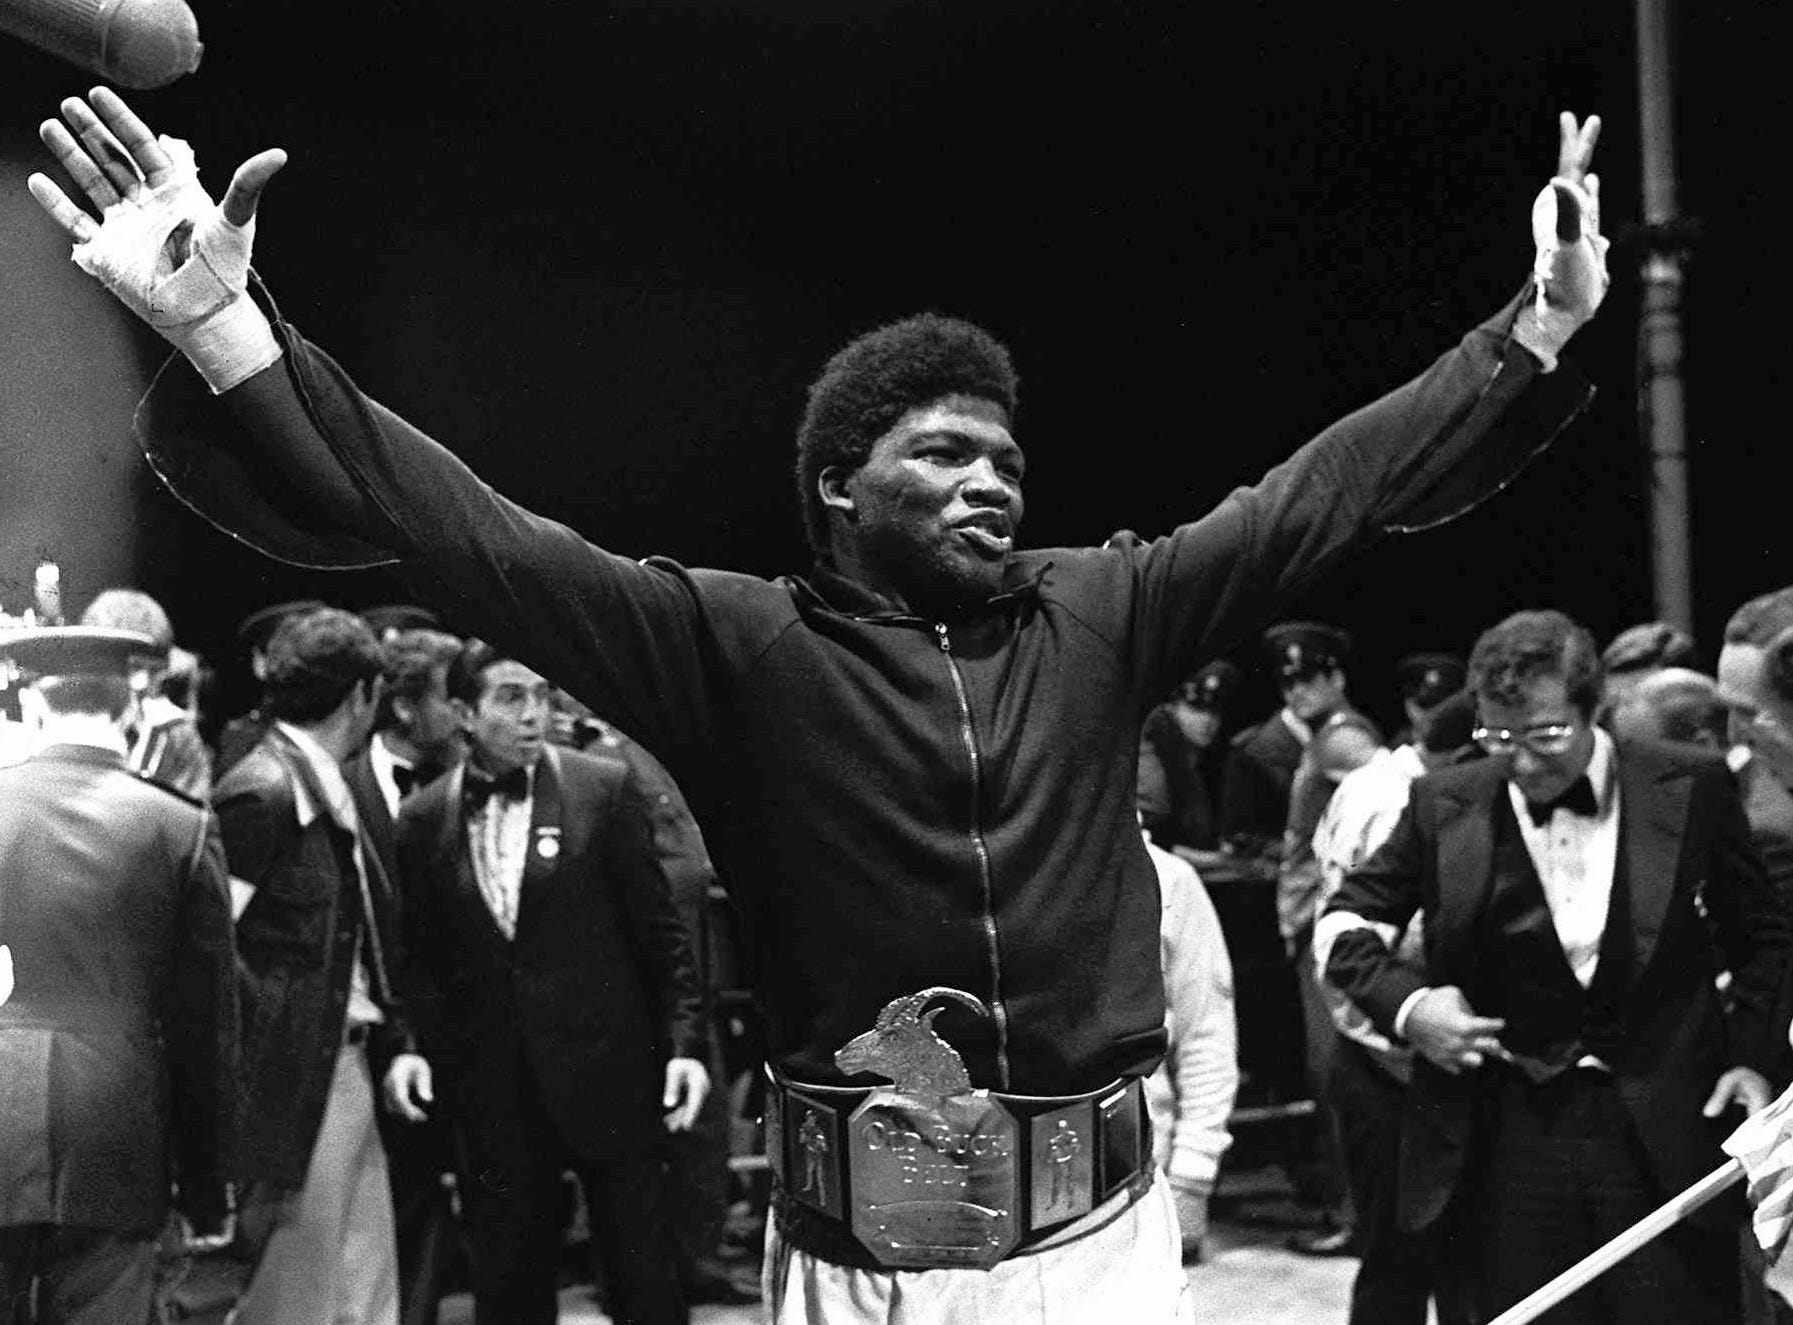 John Tate, from Knoxville, Tenn., holds his arms up in triumph after beating South Africa's Gerrie Coetzee on points for the world heavywight title at the Loftus Versfeld stadim in Pretoria, South Africa, in this Oct. 20, 1979 file photo. Tate, 43,  was killed Thursday, April 9, 1998, when the pickup truck he was driving crashed into a utility pole. The accident occurred less than a mile from the old Ivy Glenn training camp Tate used after he won the WBA title over a battered Coetzee.